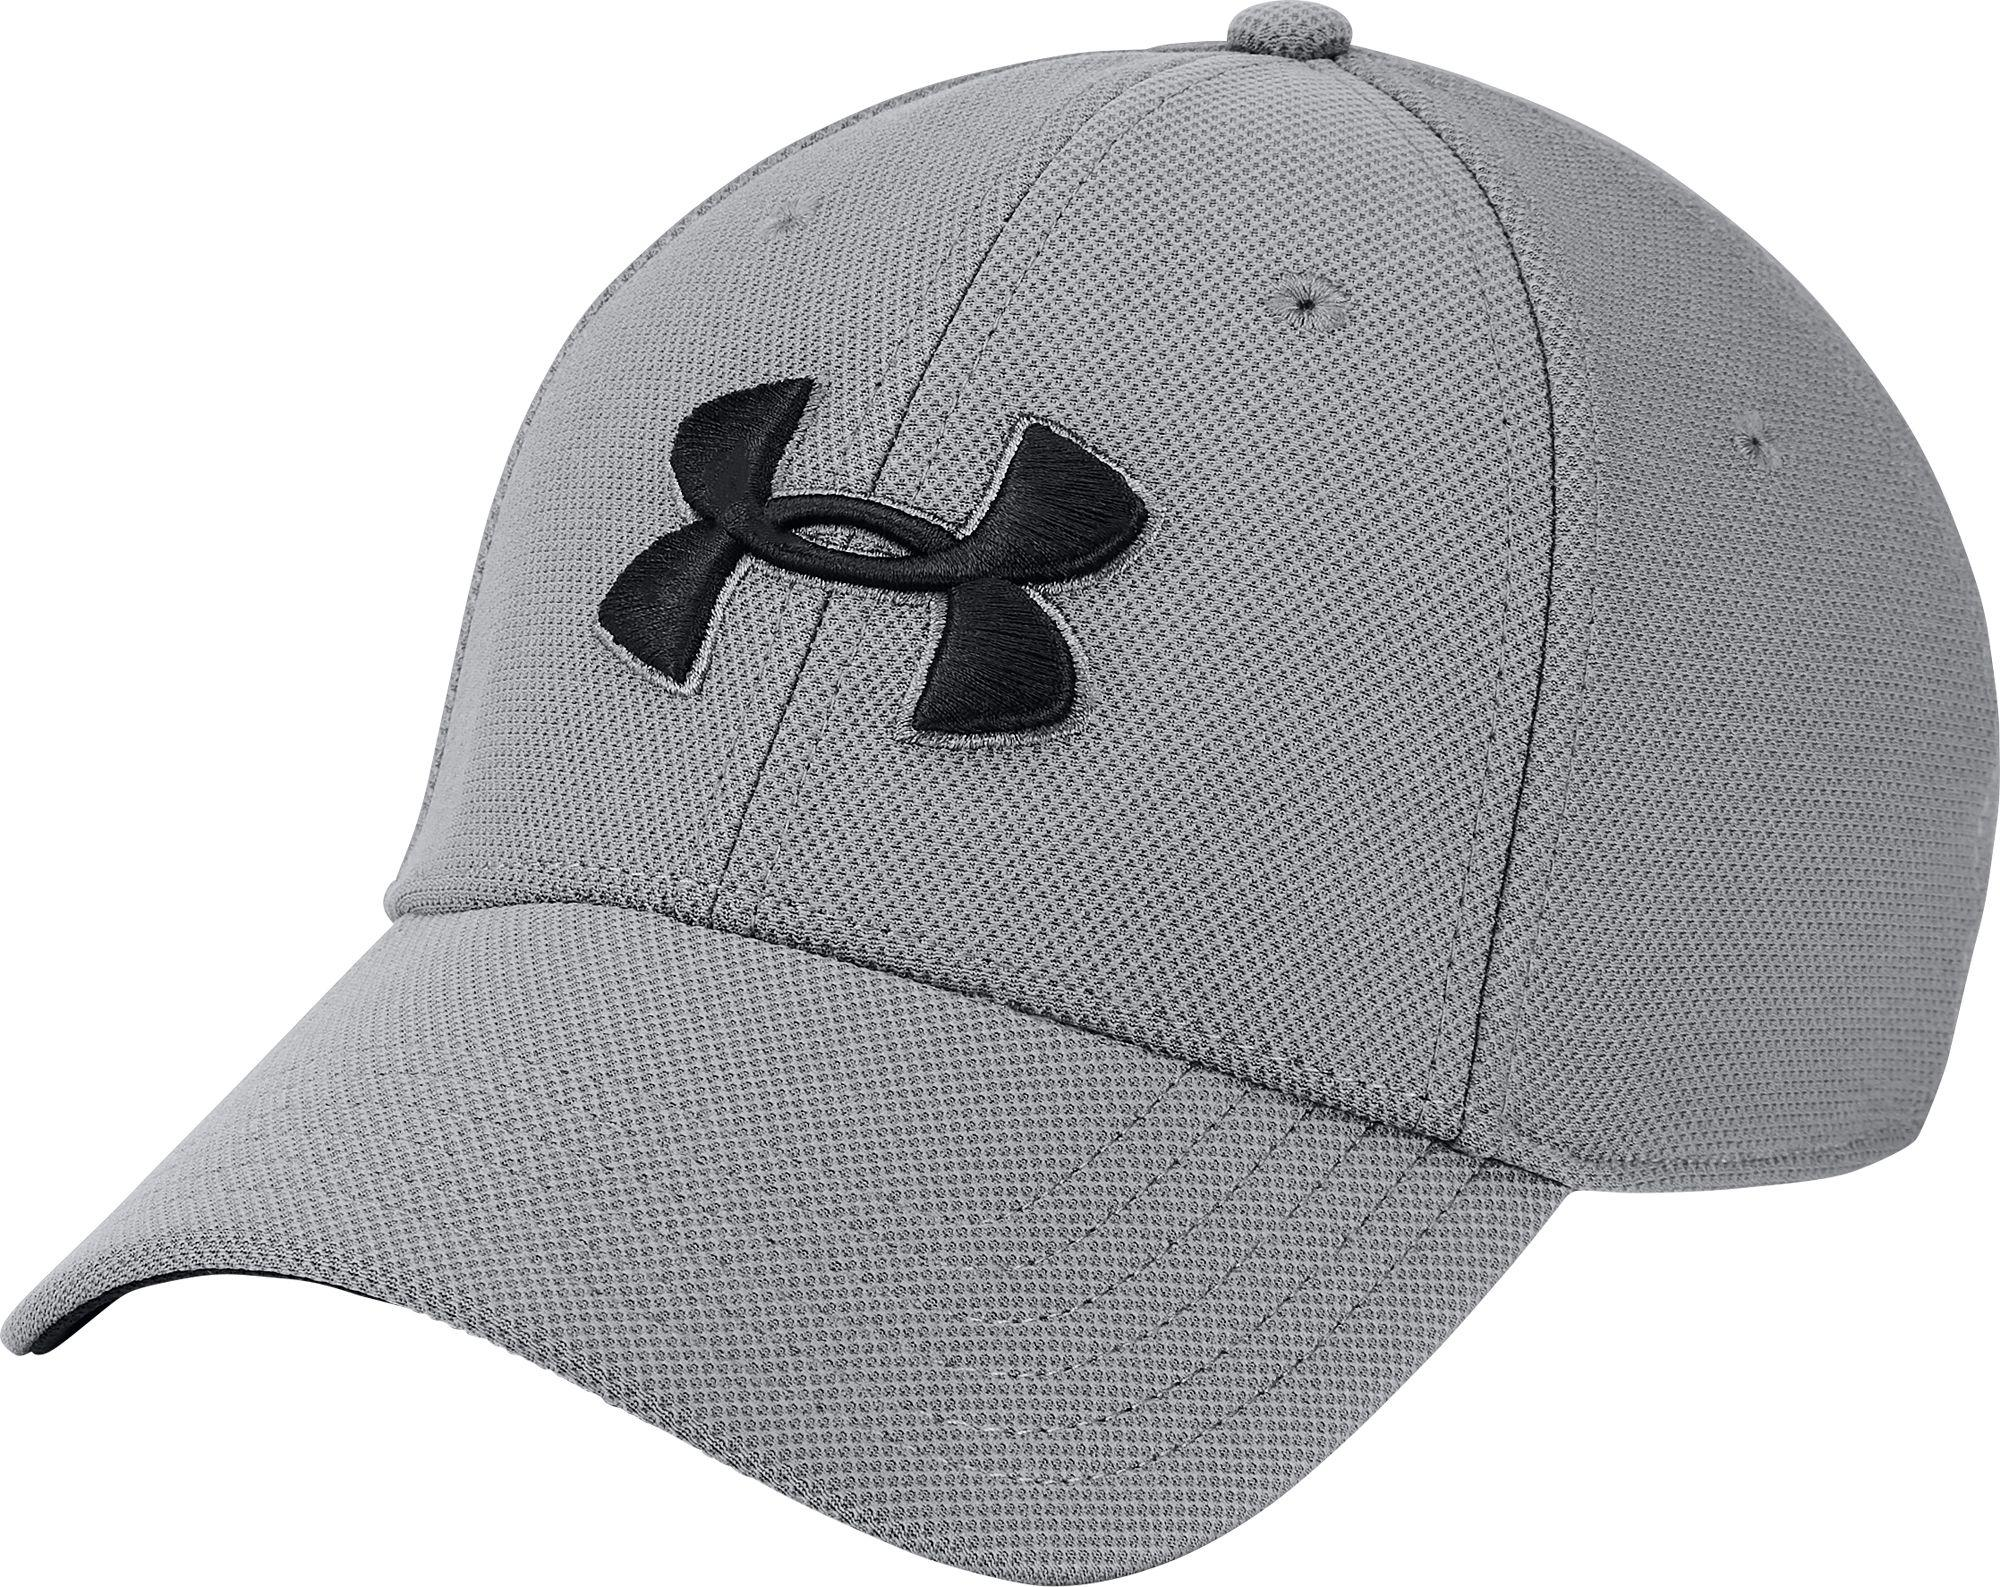 eb14102f0f8 Lyst - Under Armour Litzing Hat 3.0 in Gray for Men